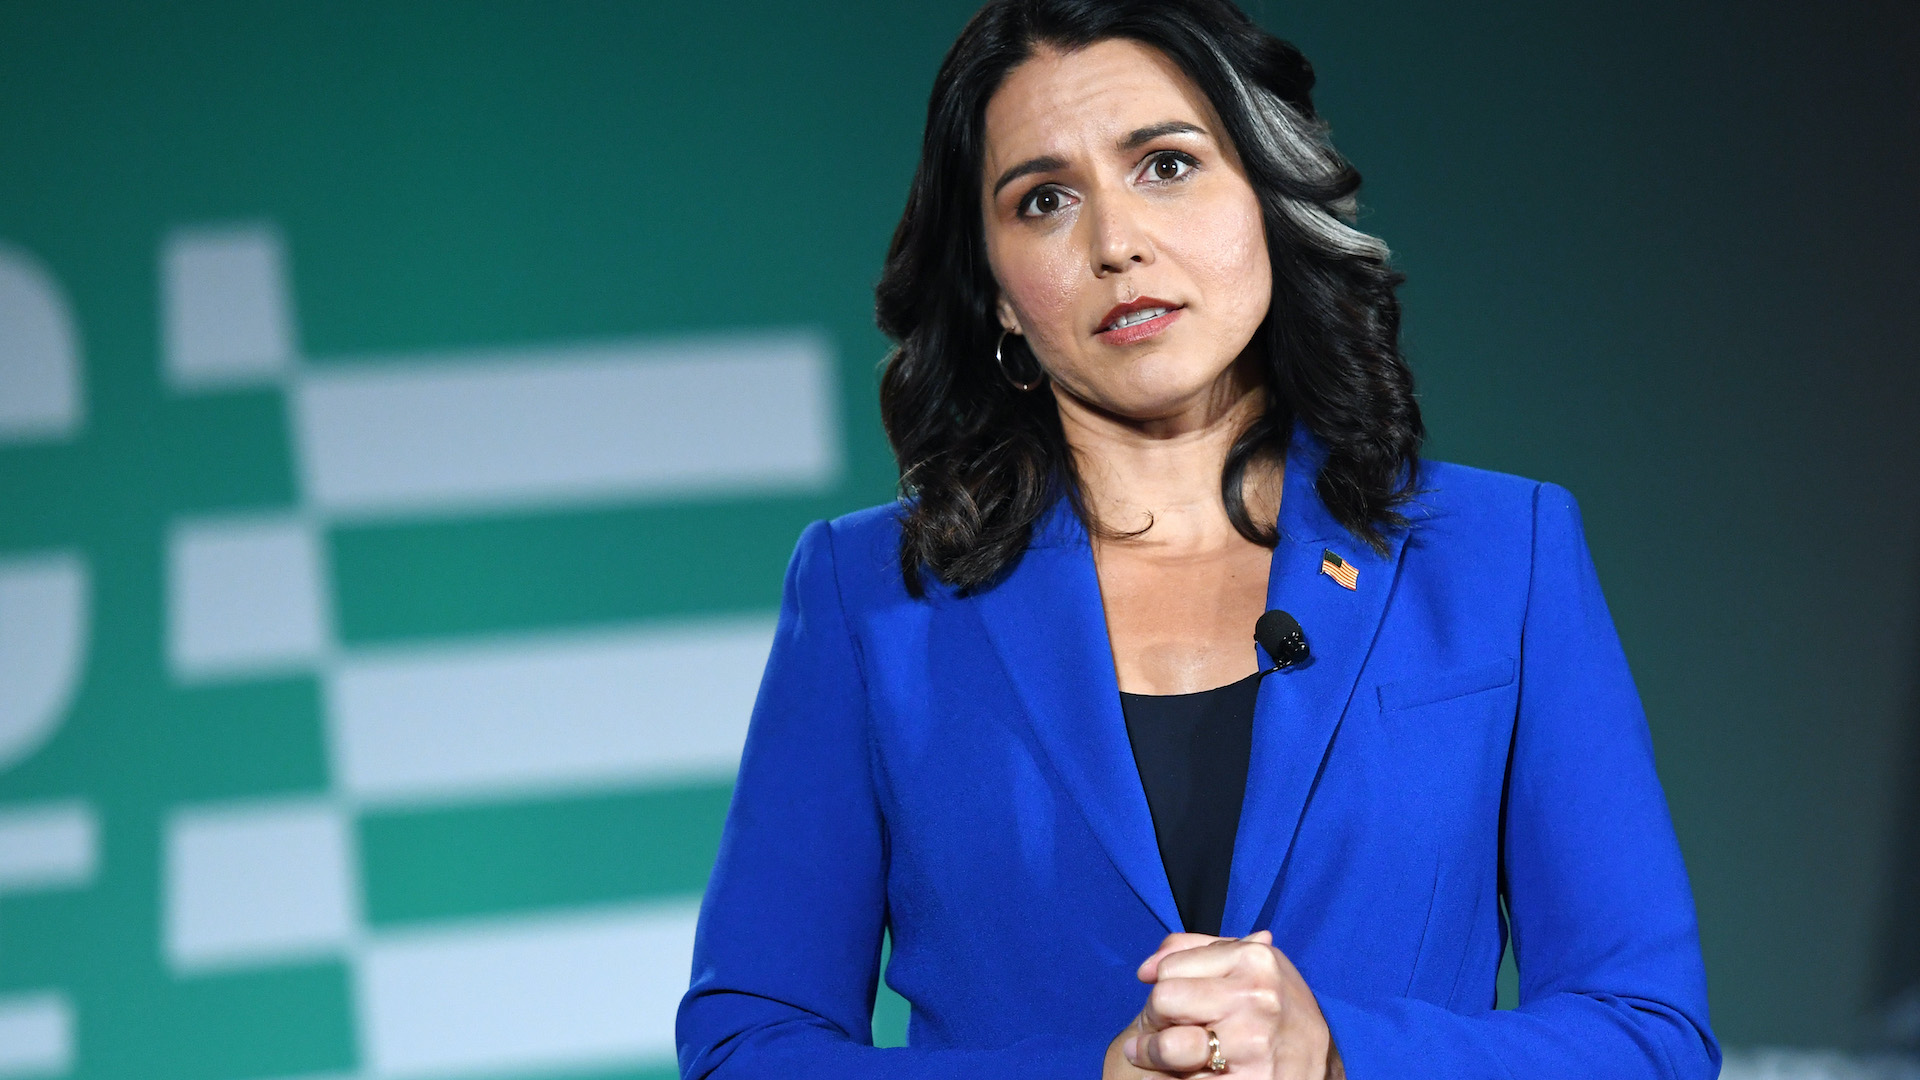 Tulsi Gabbard Criticized for Introducing Transphobic Bill to 'Protect Women's Sports'